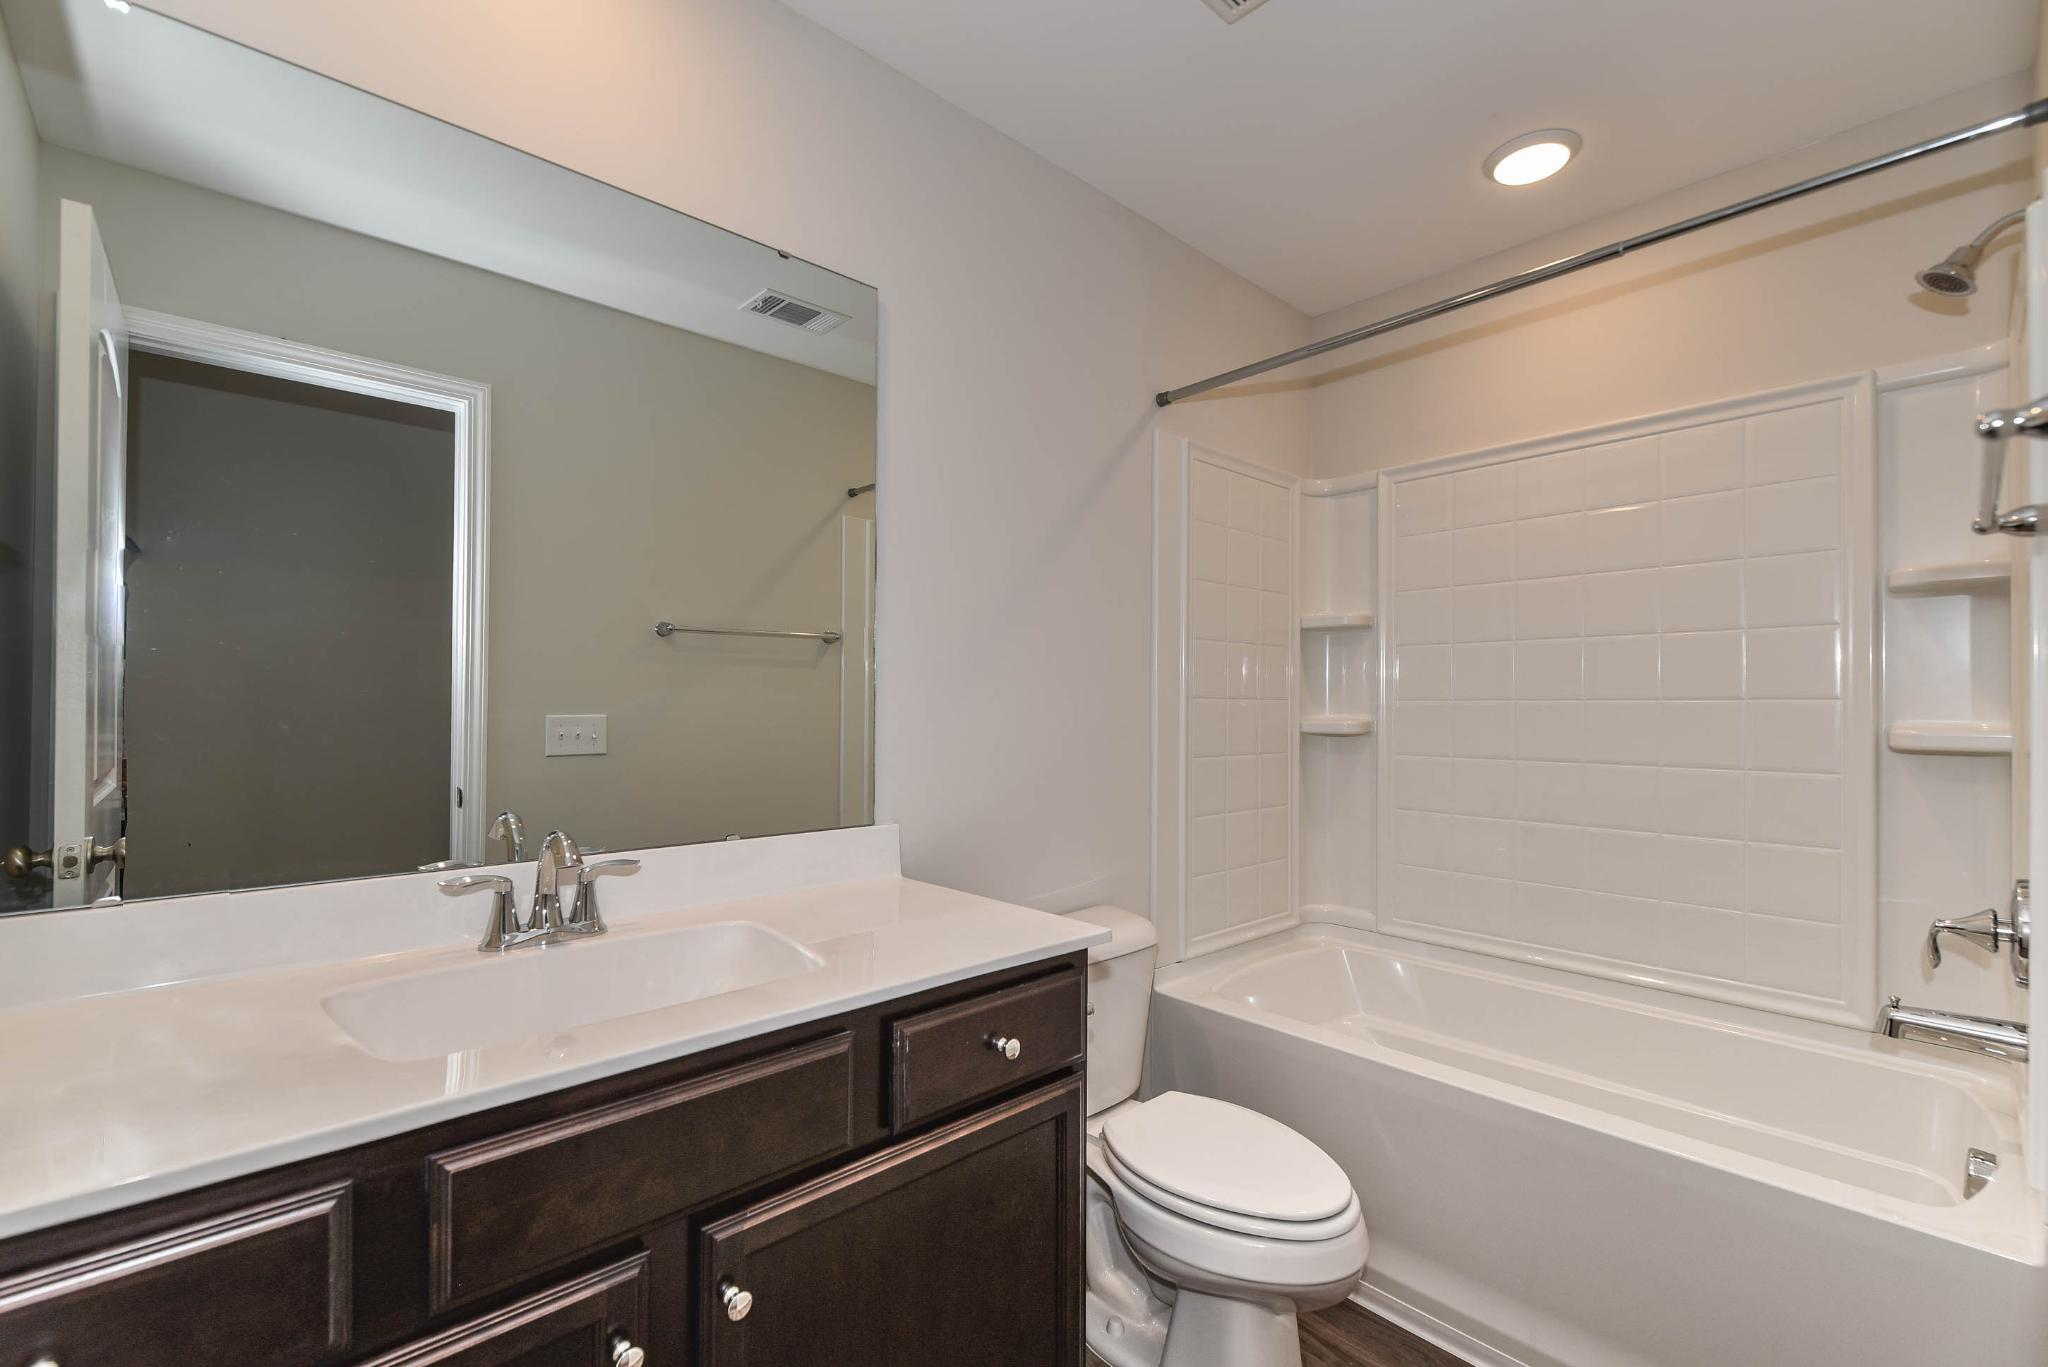 Bathroom featured in the St. Helena By Ernest Homes in Savannah, GA